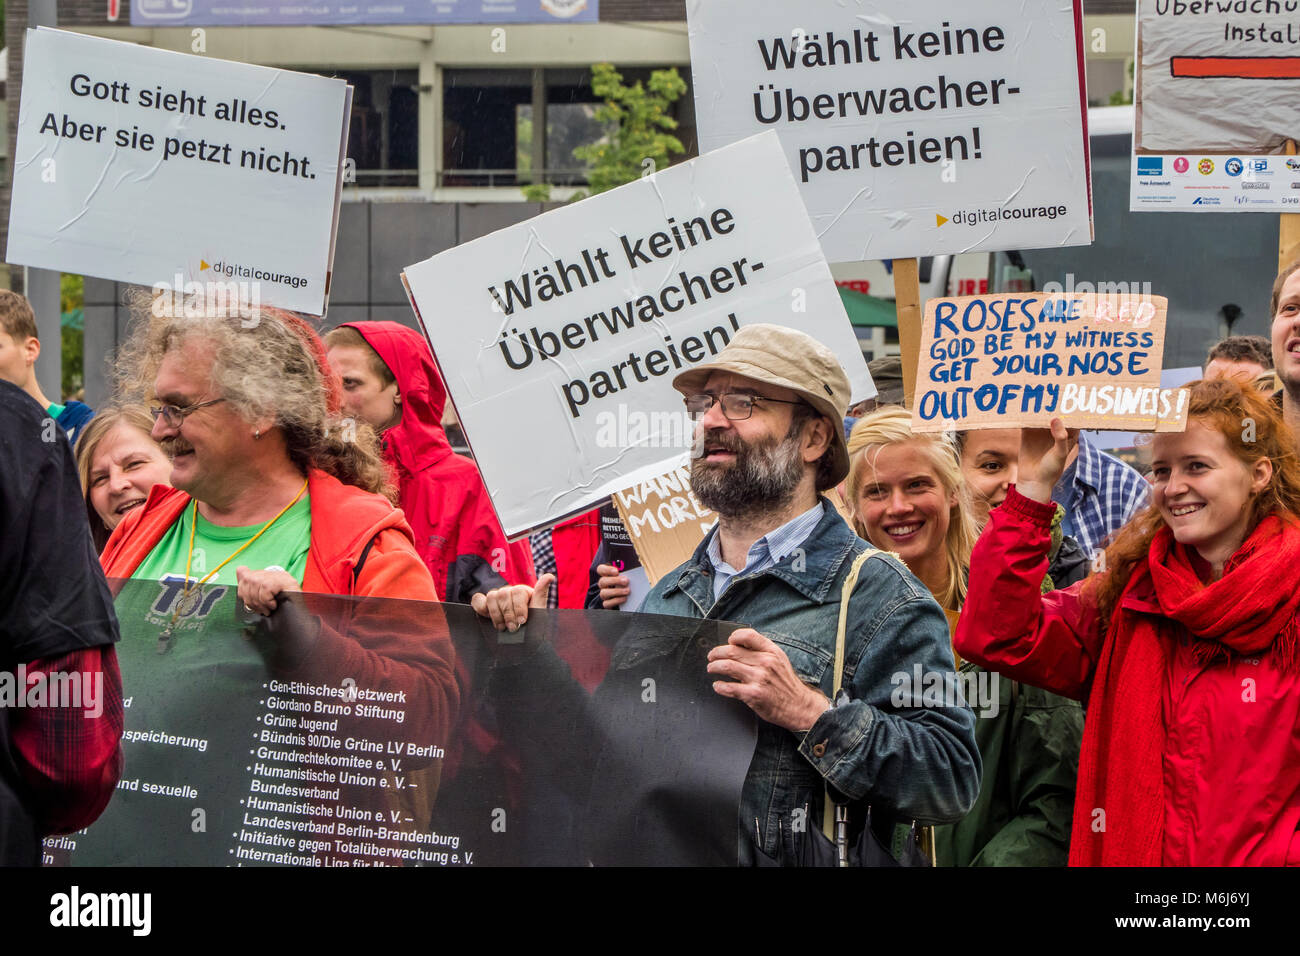 Demonstration against Privacy Intrusion September 2017, Berlin Germany - Stock Image